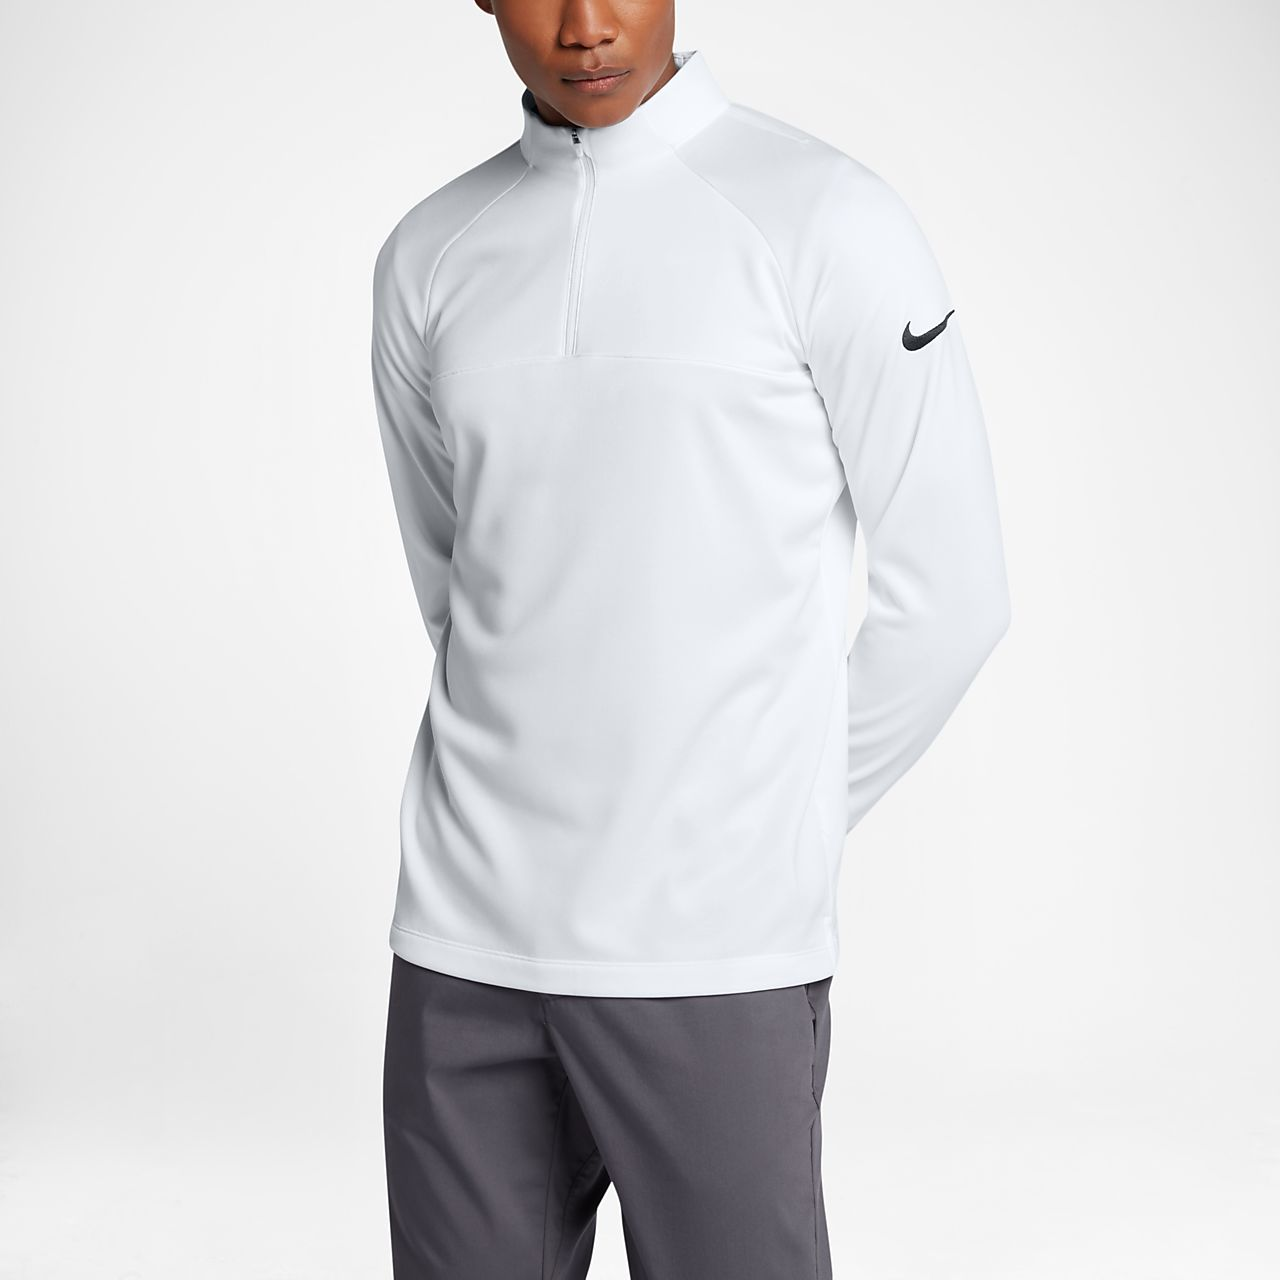 Nike Mens Running Top - Nike AeroReact Half-Zip Wolf Grey U39r2719